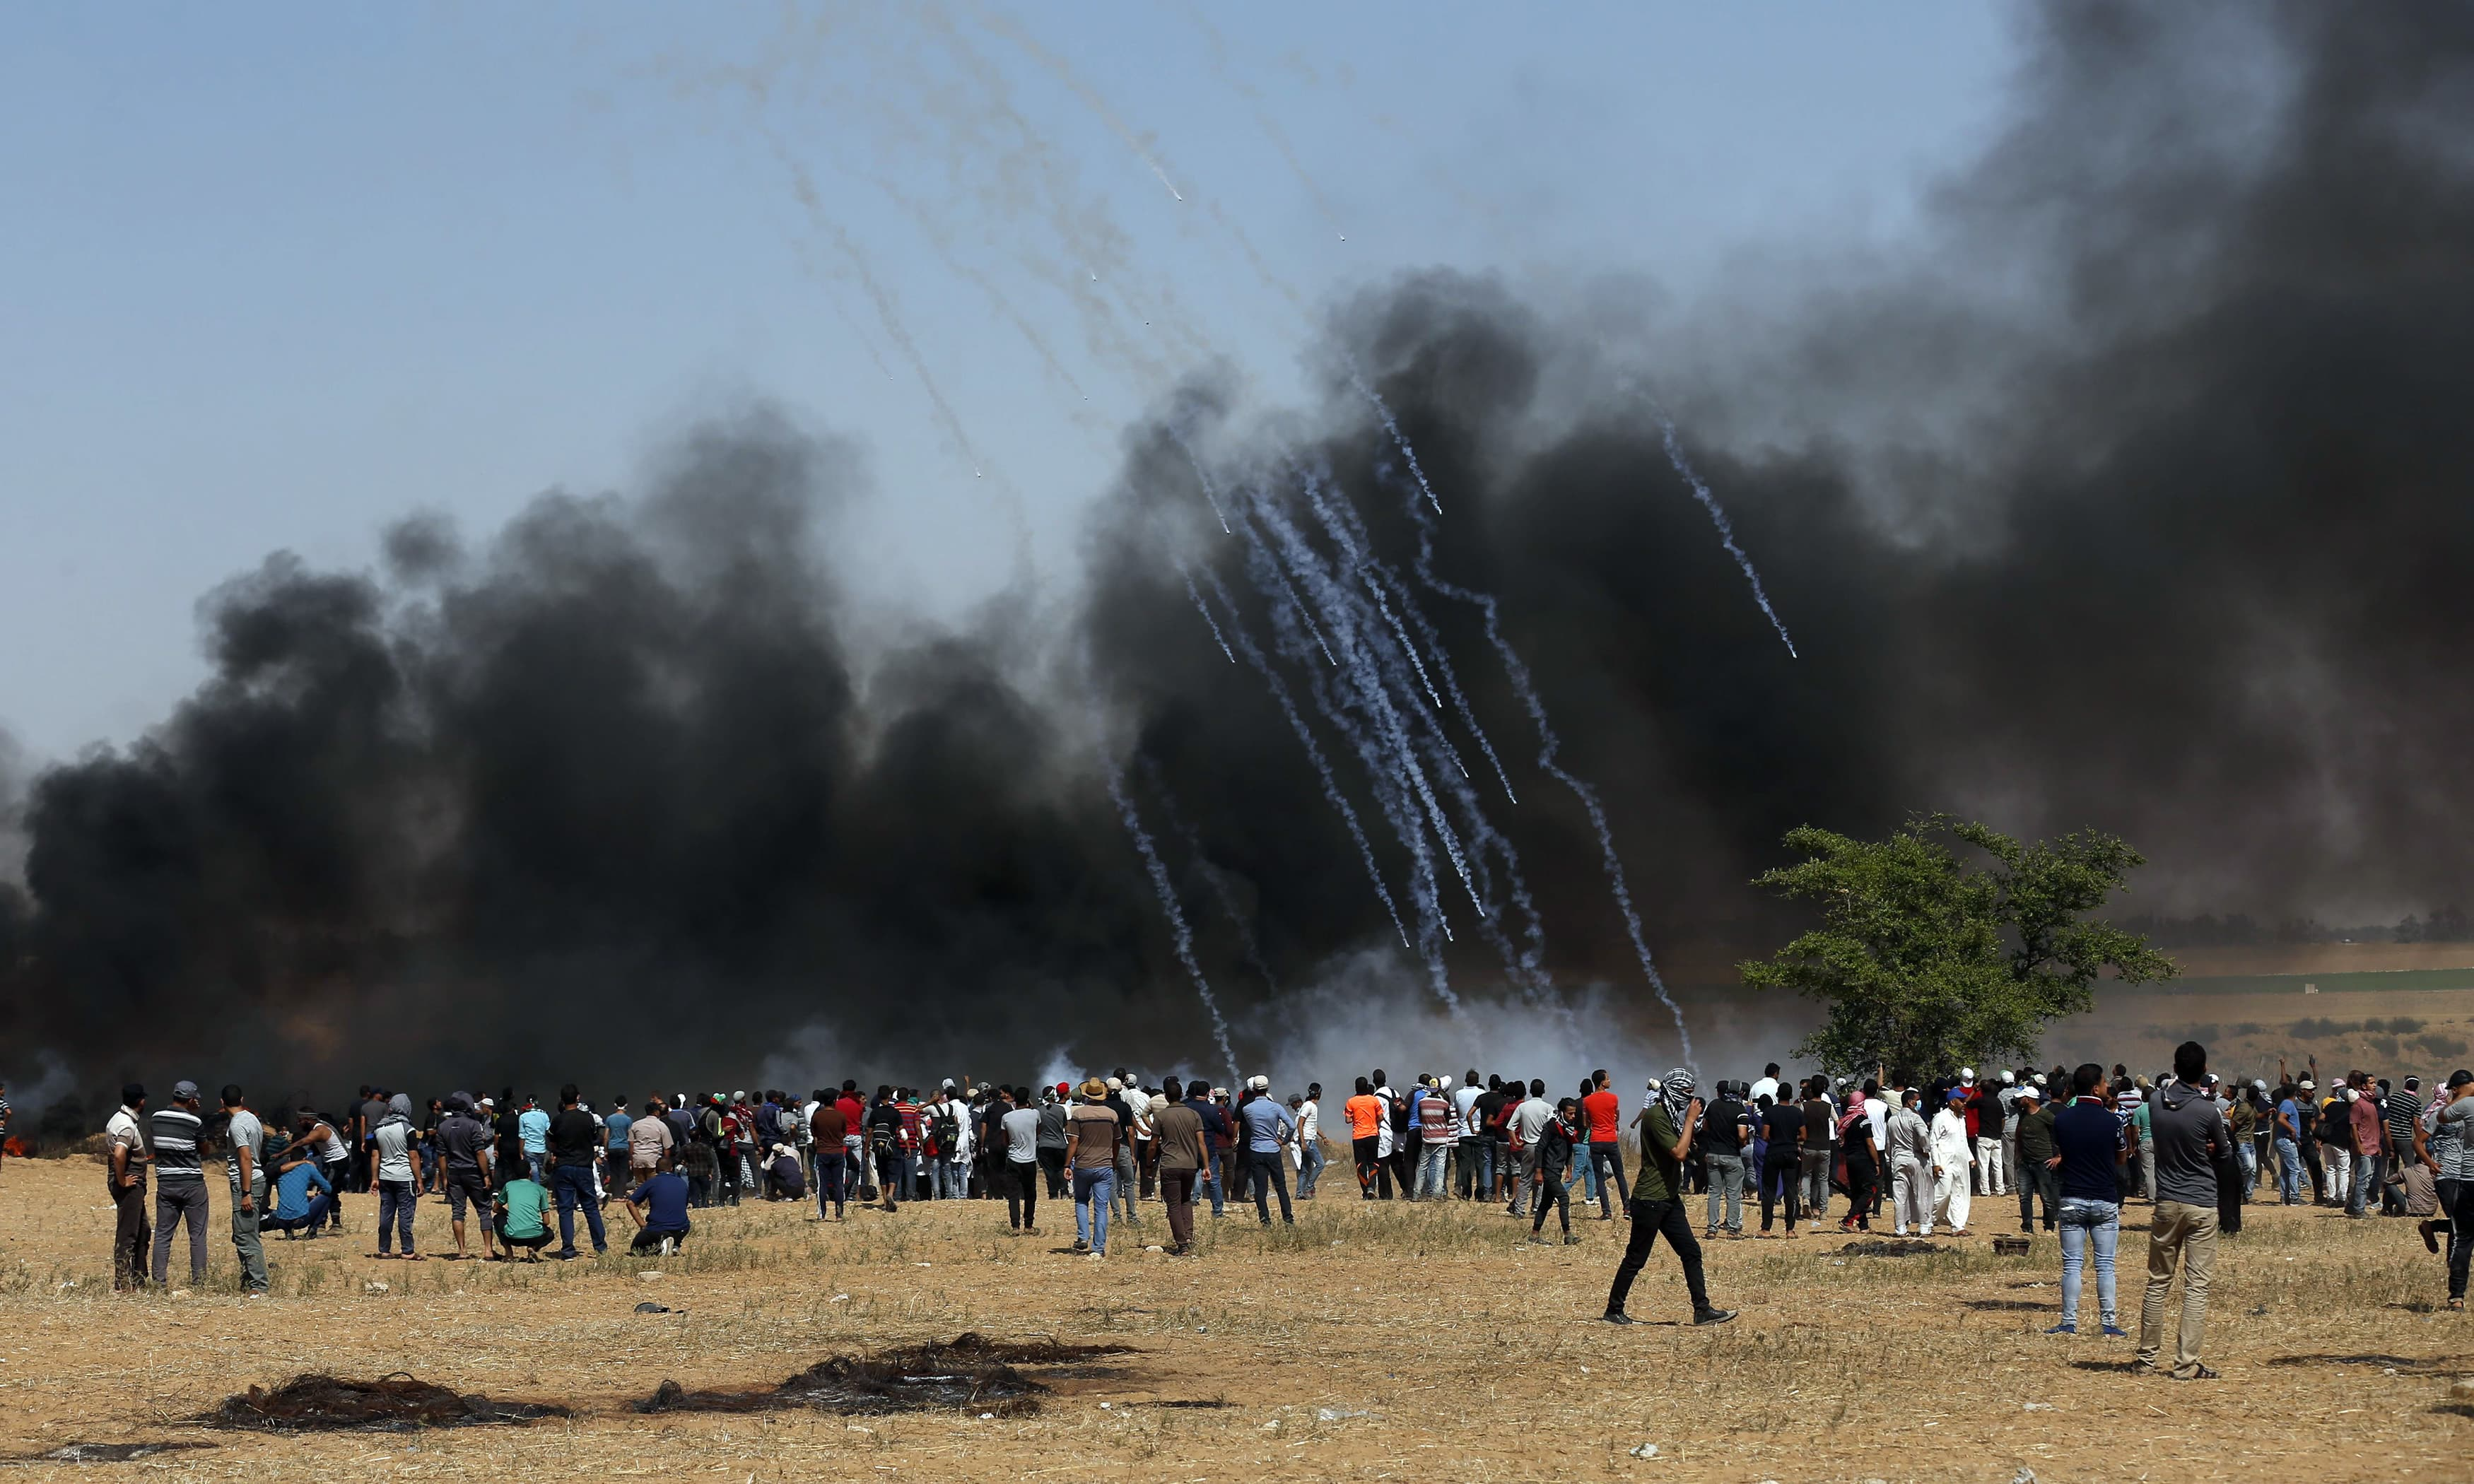 Tear gas canisters are fired by Israeli forces towards a group of Palestinian protesters. —AFP